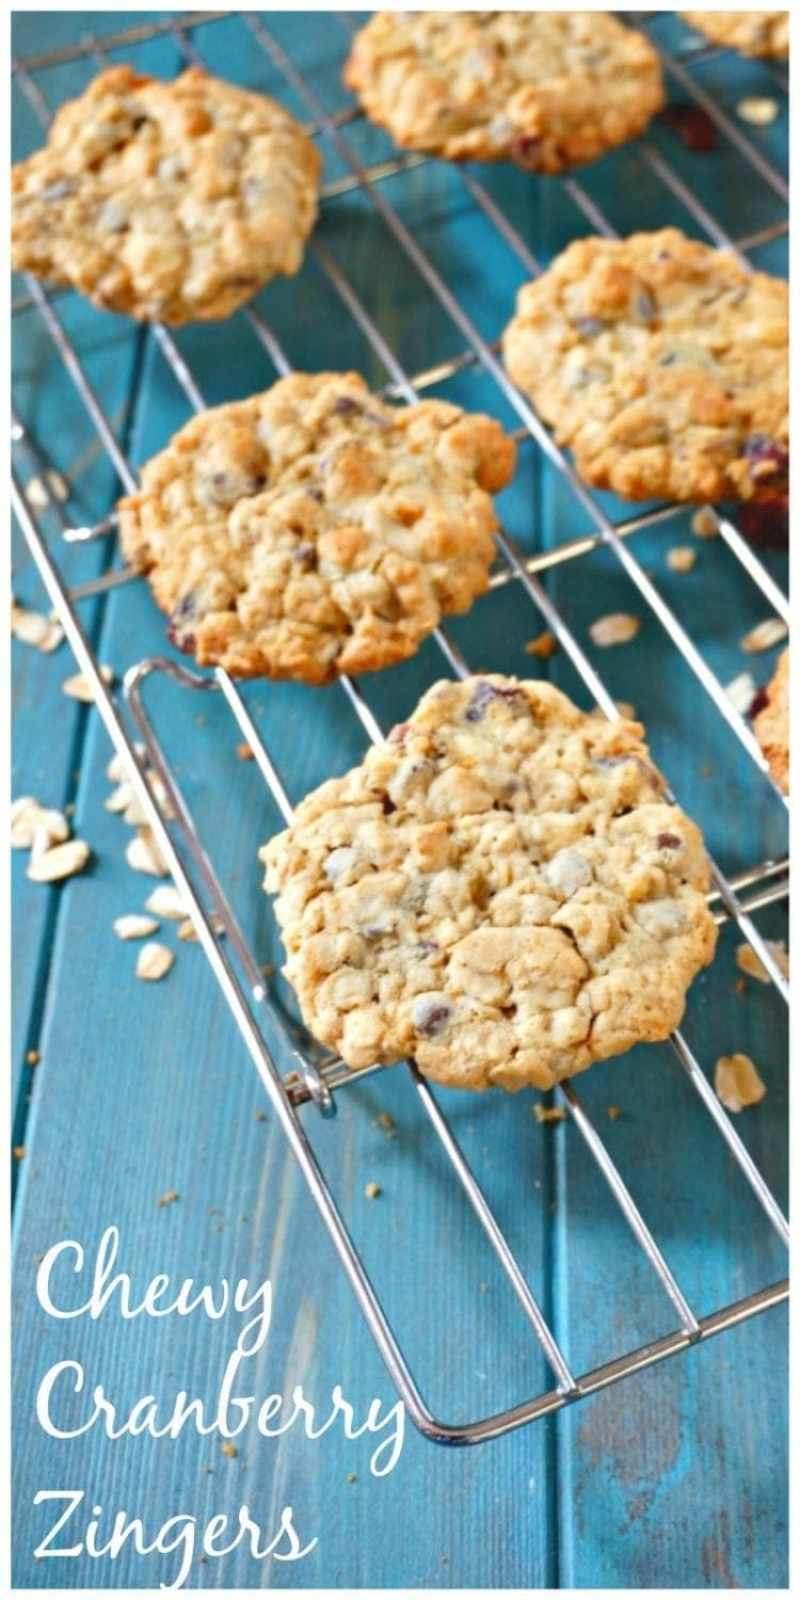 Chewy Cranberry Zinger Cookies: A chewy oatmeal cookie that is filled with dried cranberries, chopped nuts, cinnamon and a zing of ginger. A recipe shared straight from Christy Jordan's cookbook, Sweetness.